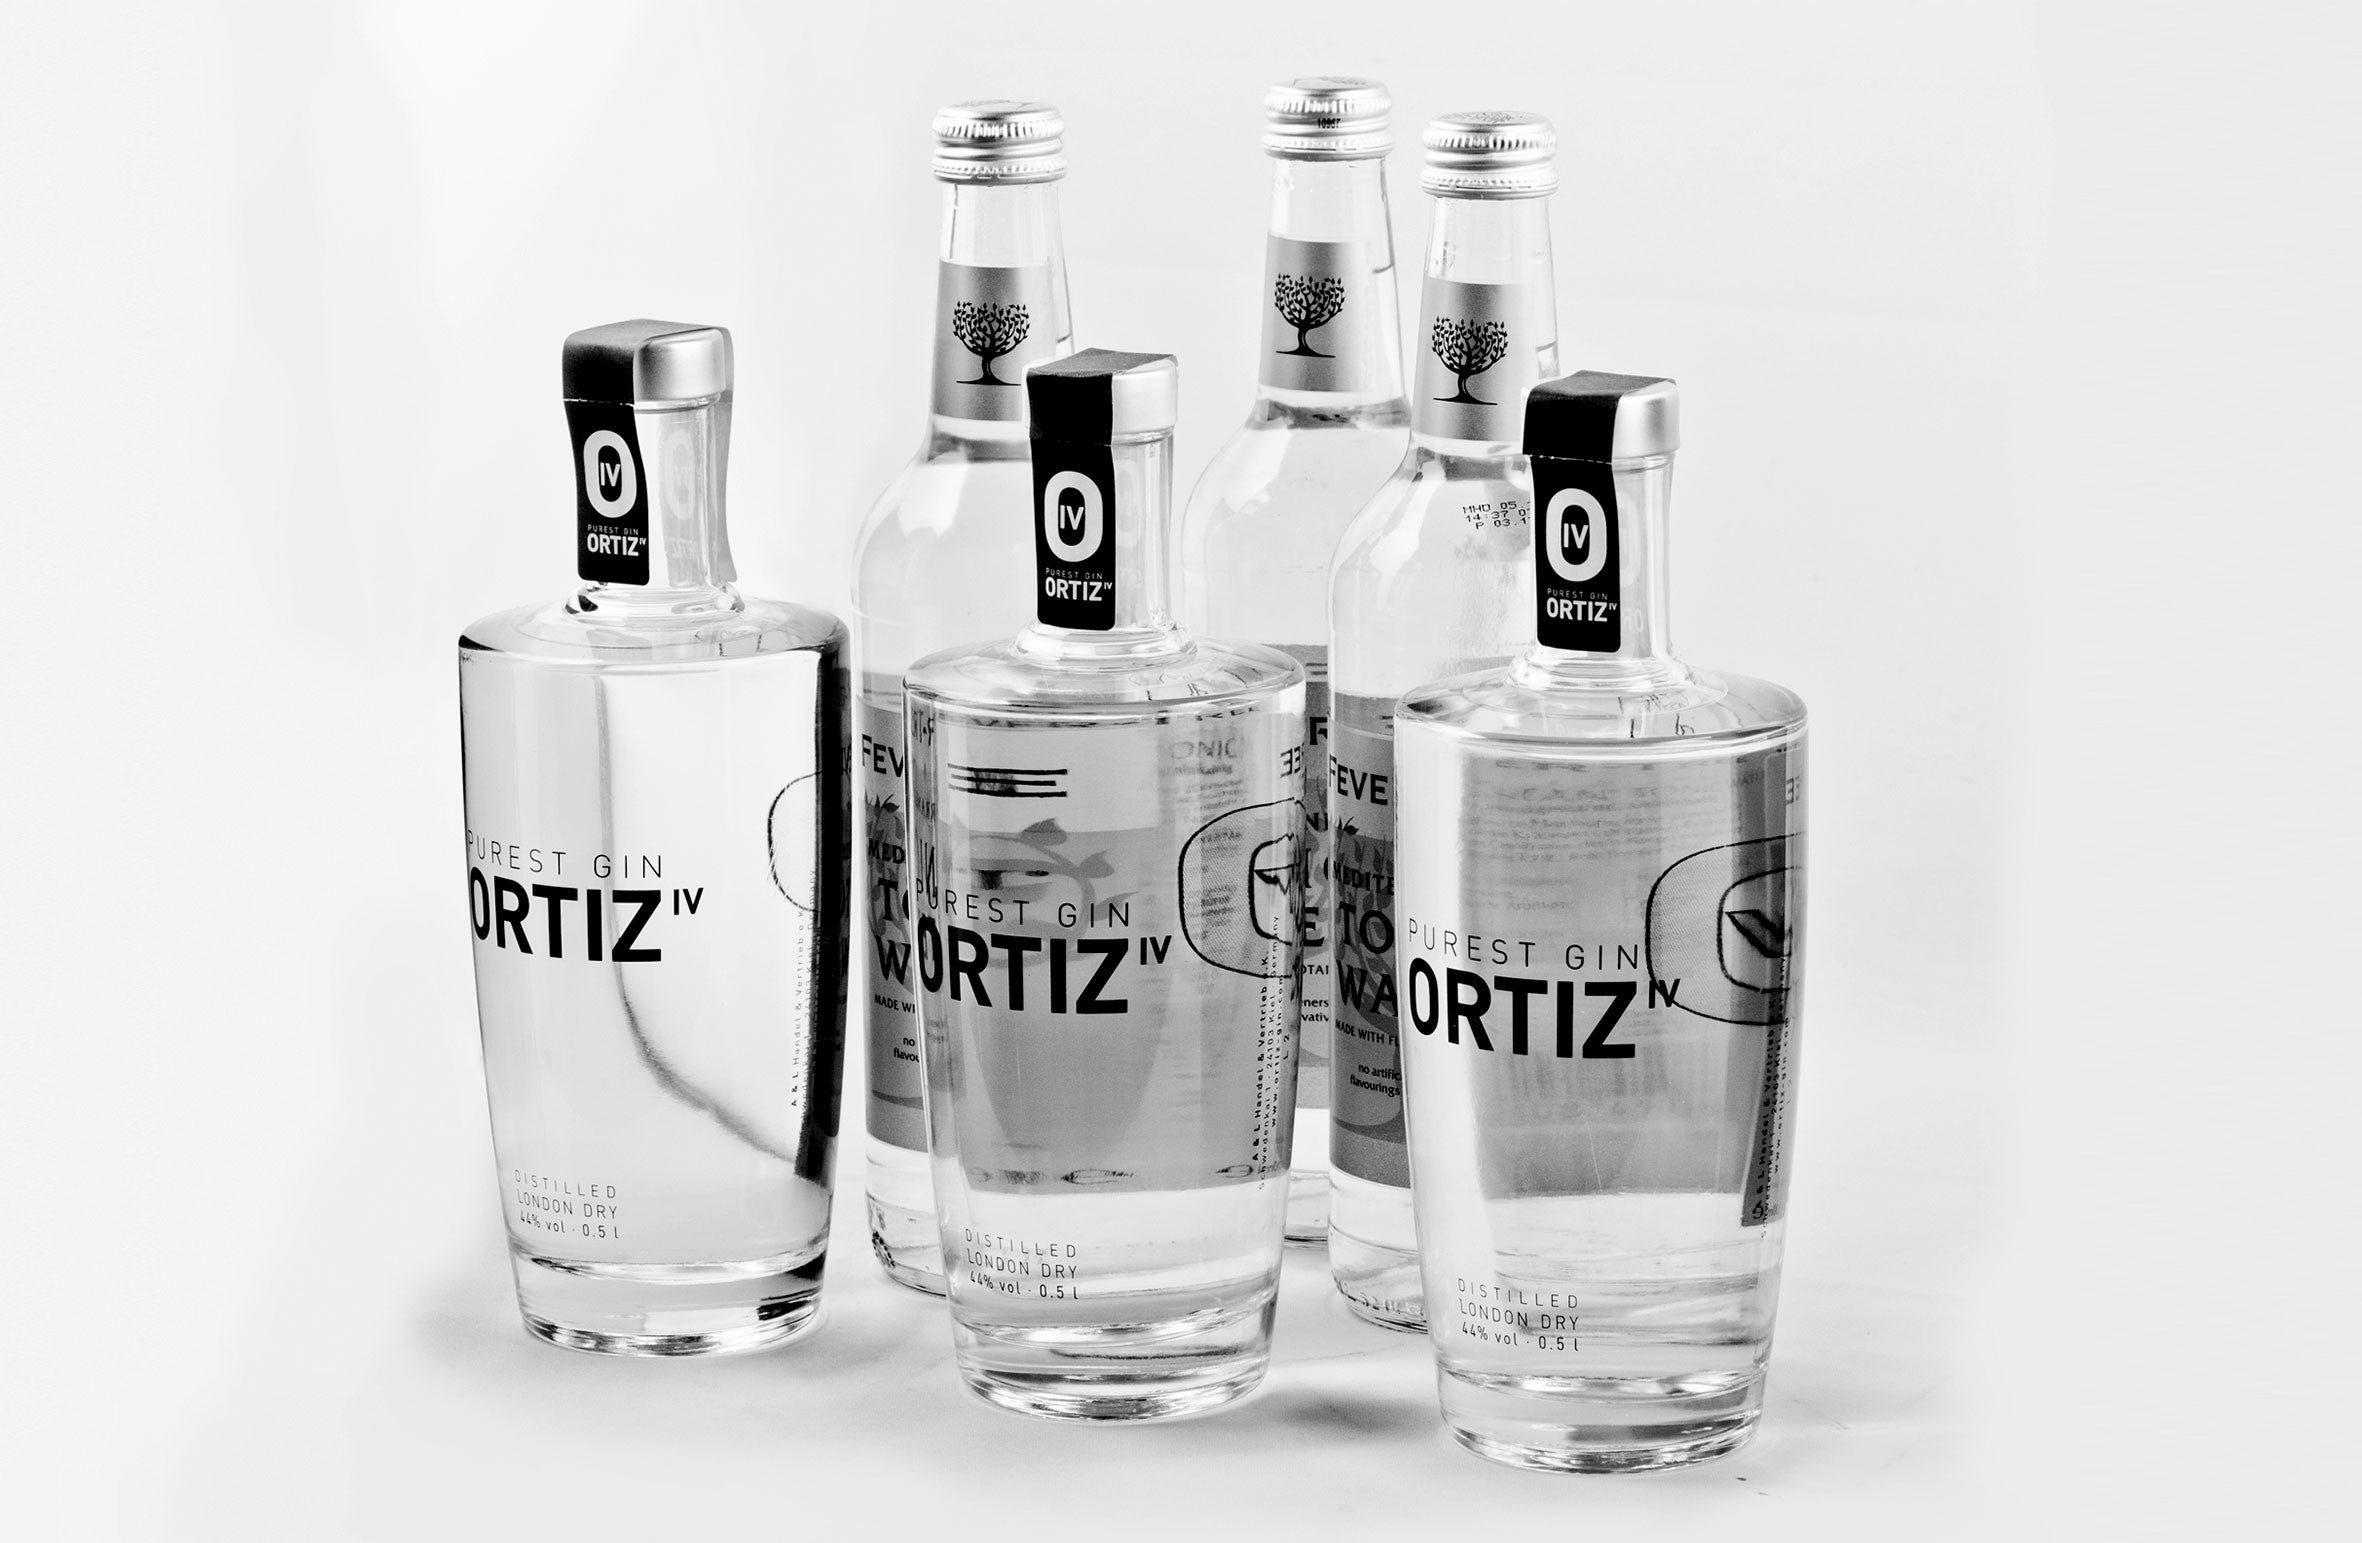 3 bottles ORTIZ IV PUREST GIN 0.5l incl. 3 bottles Fever Tree Tonic 0.5l